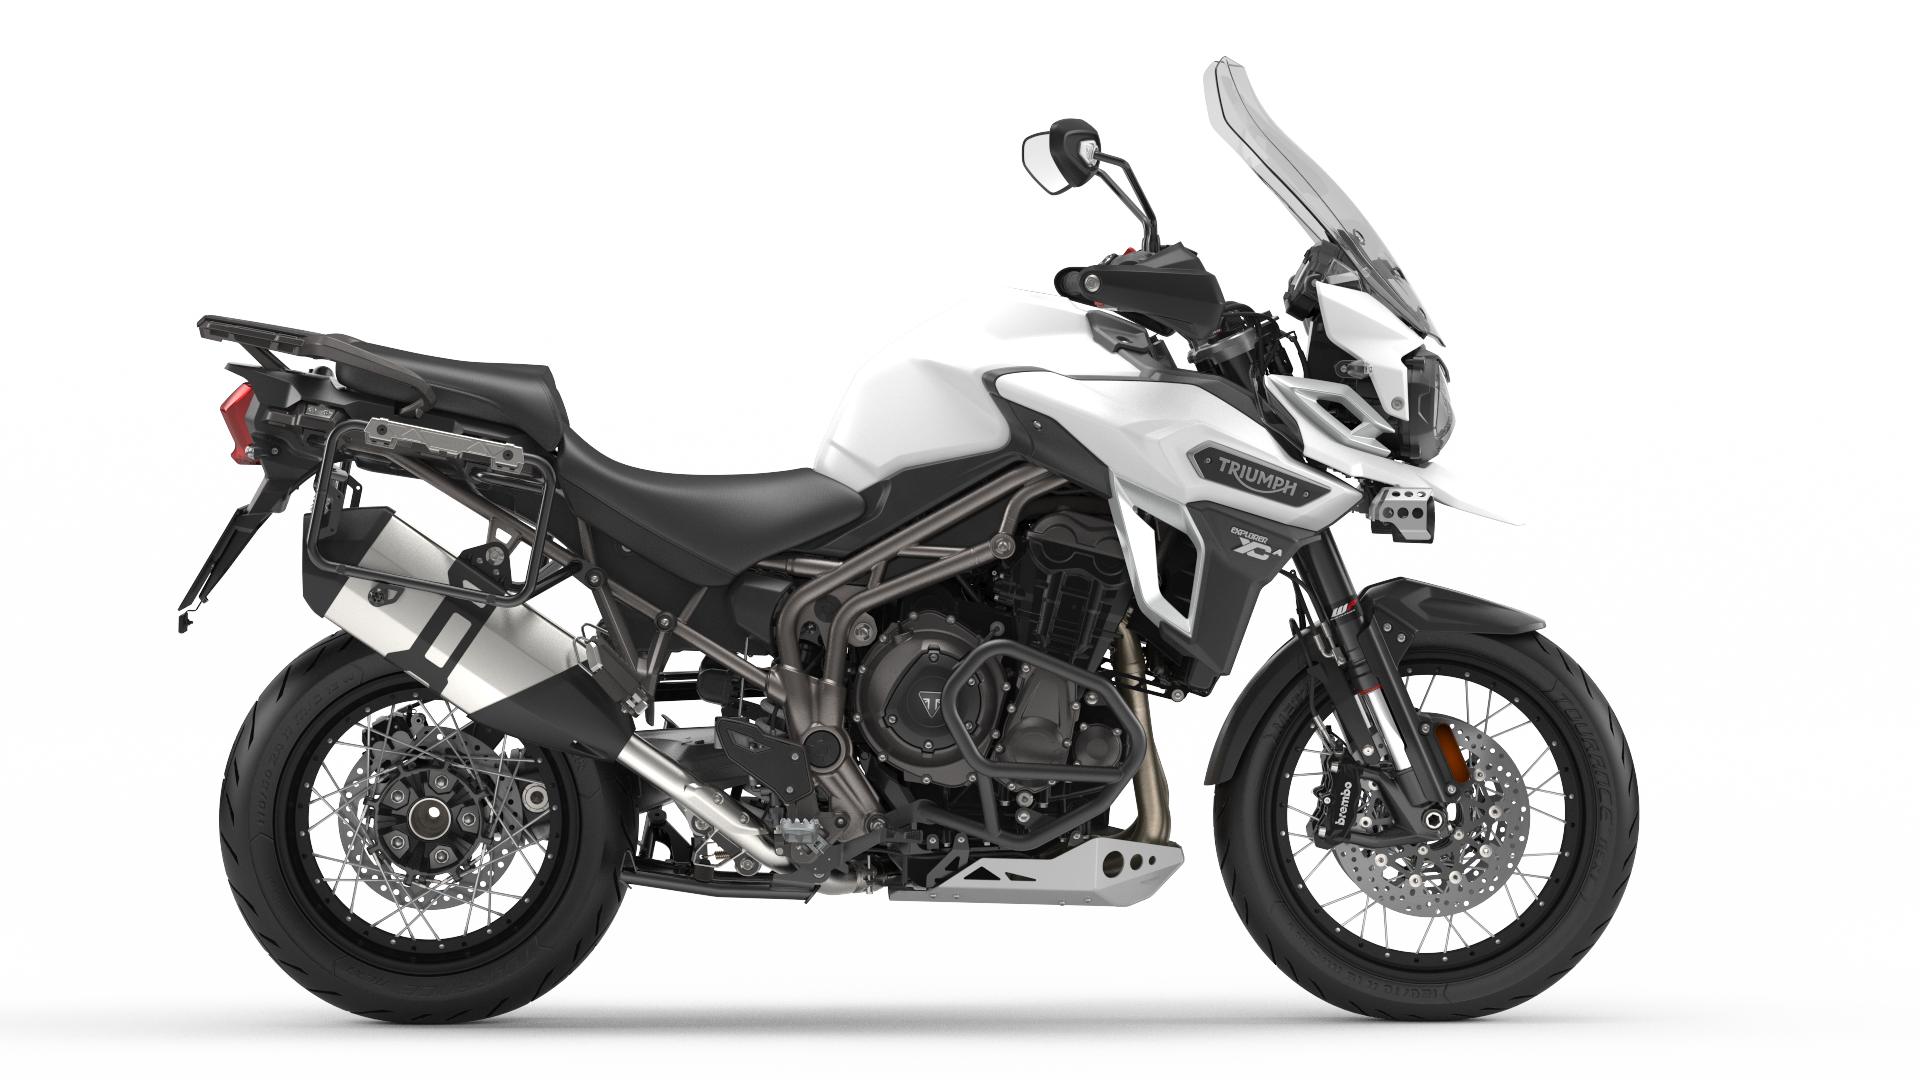 Tiger Explorer XCA Motorcycles for sale, New triumph